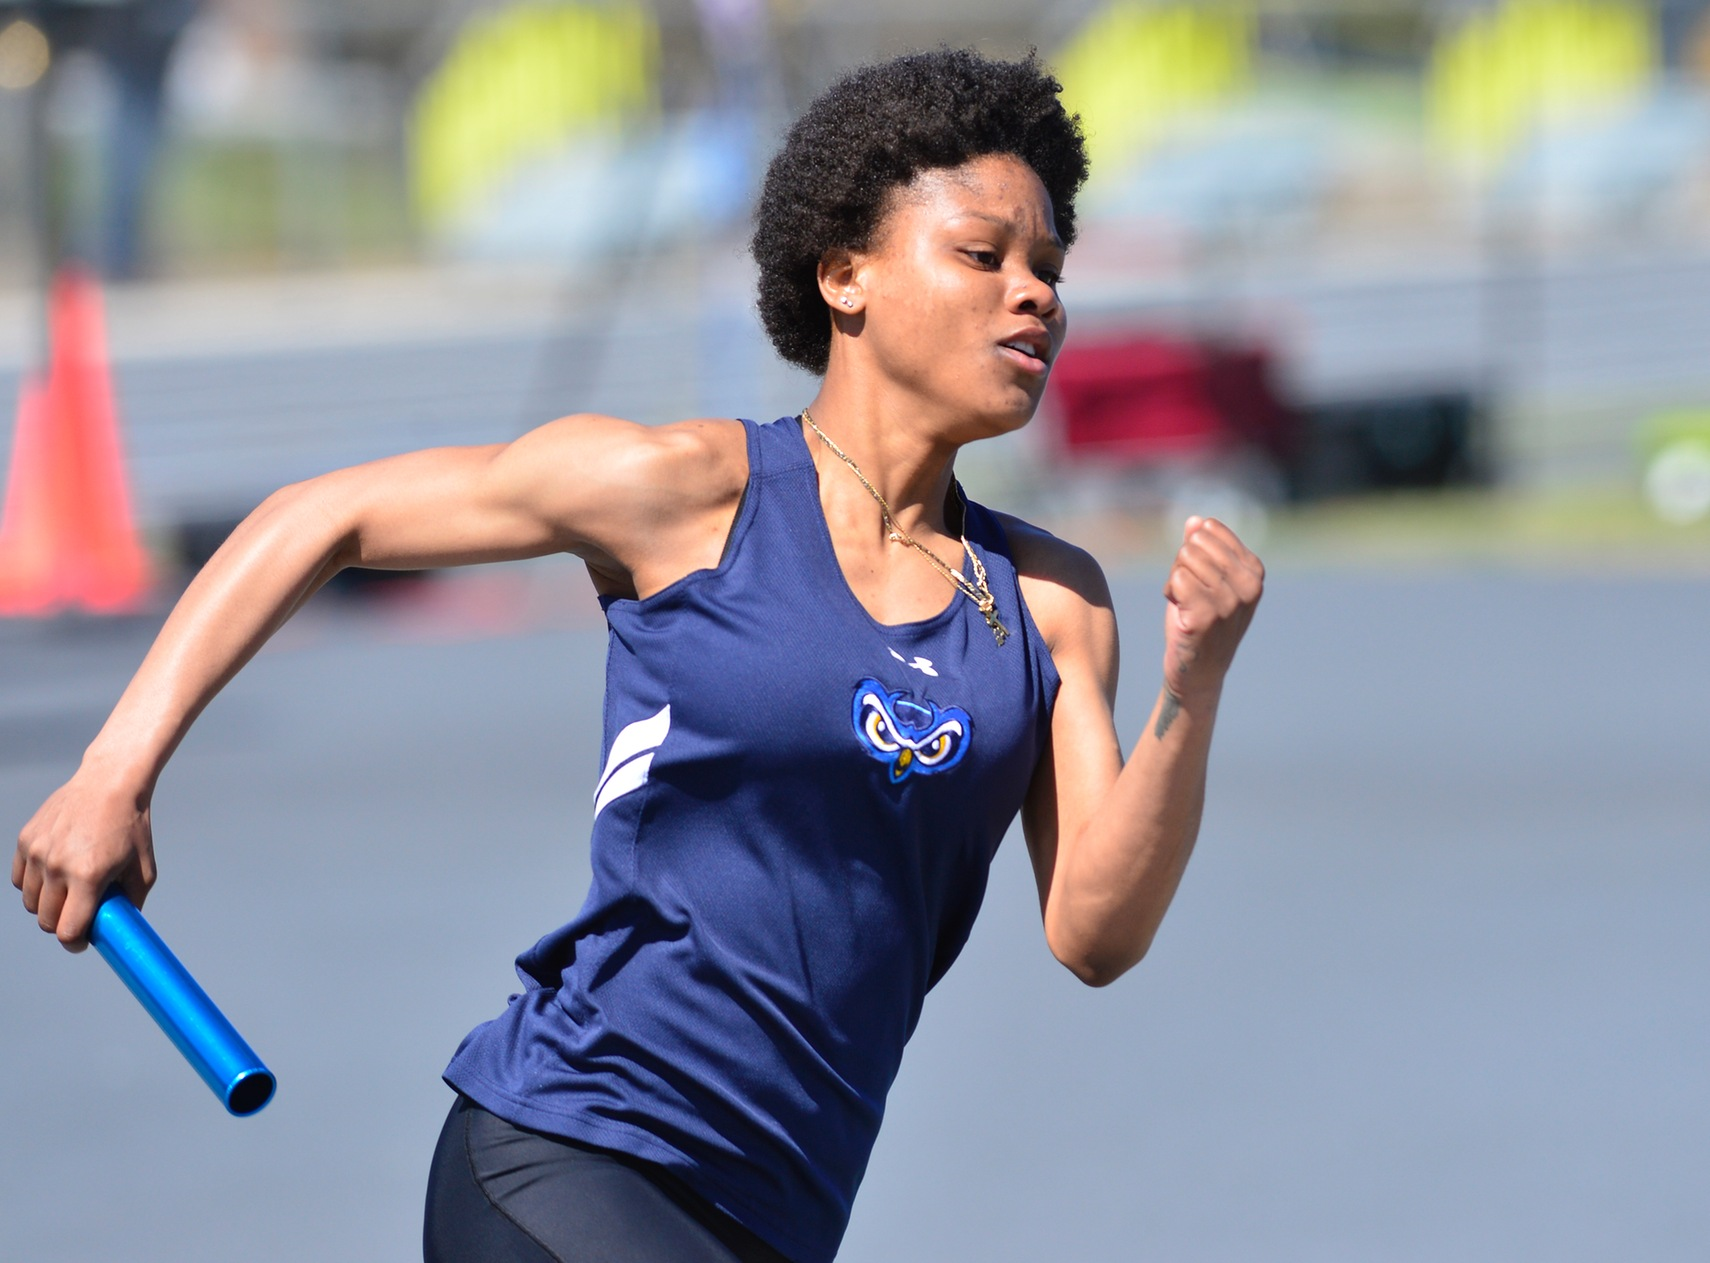 Foday Paces Prince George's Track And Field At Towson Invitational